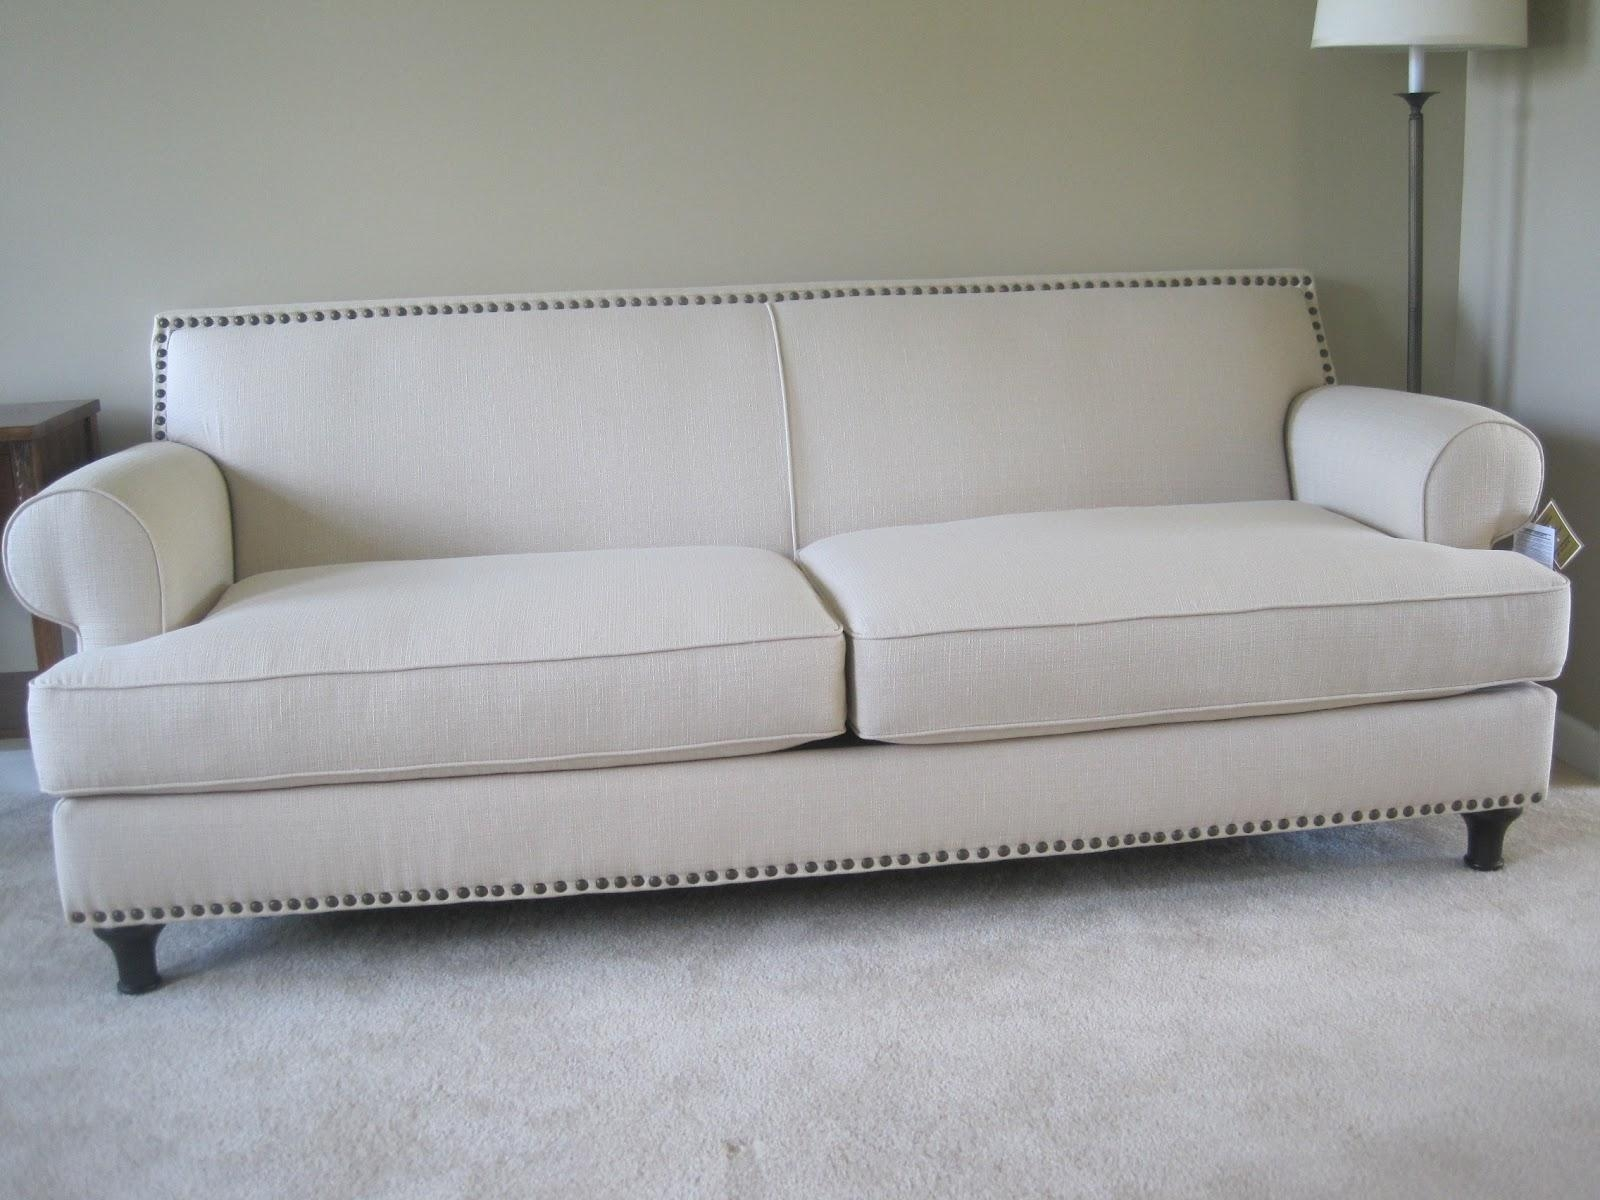 Designed To Dwell: So Fa Ortunate! In Pier One Carmen Sofas (Image 8 of 20)